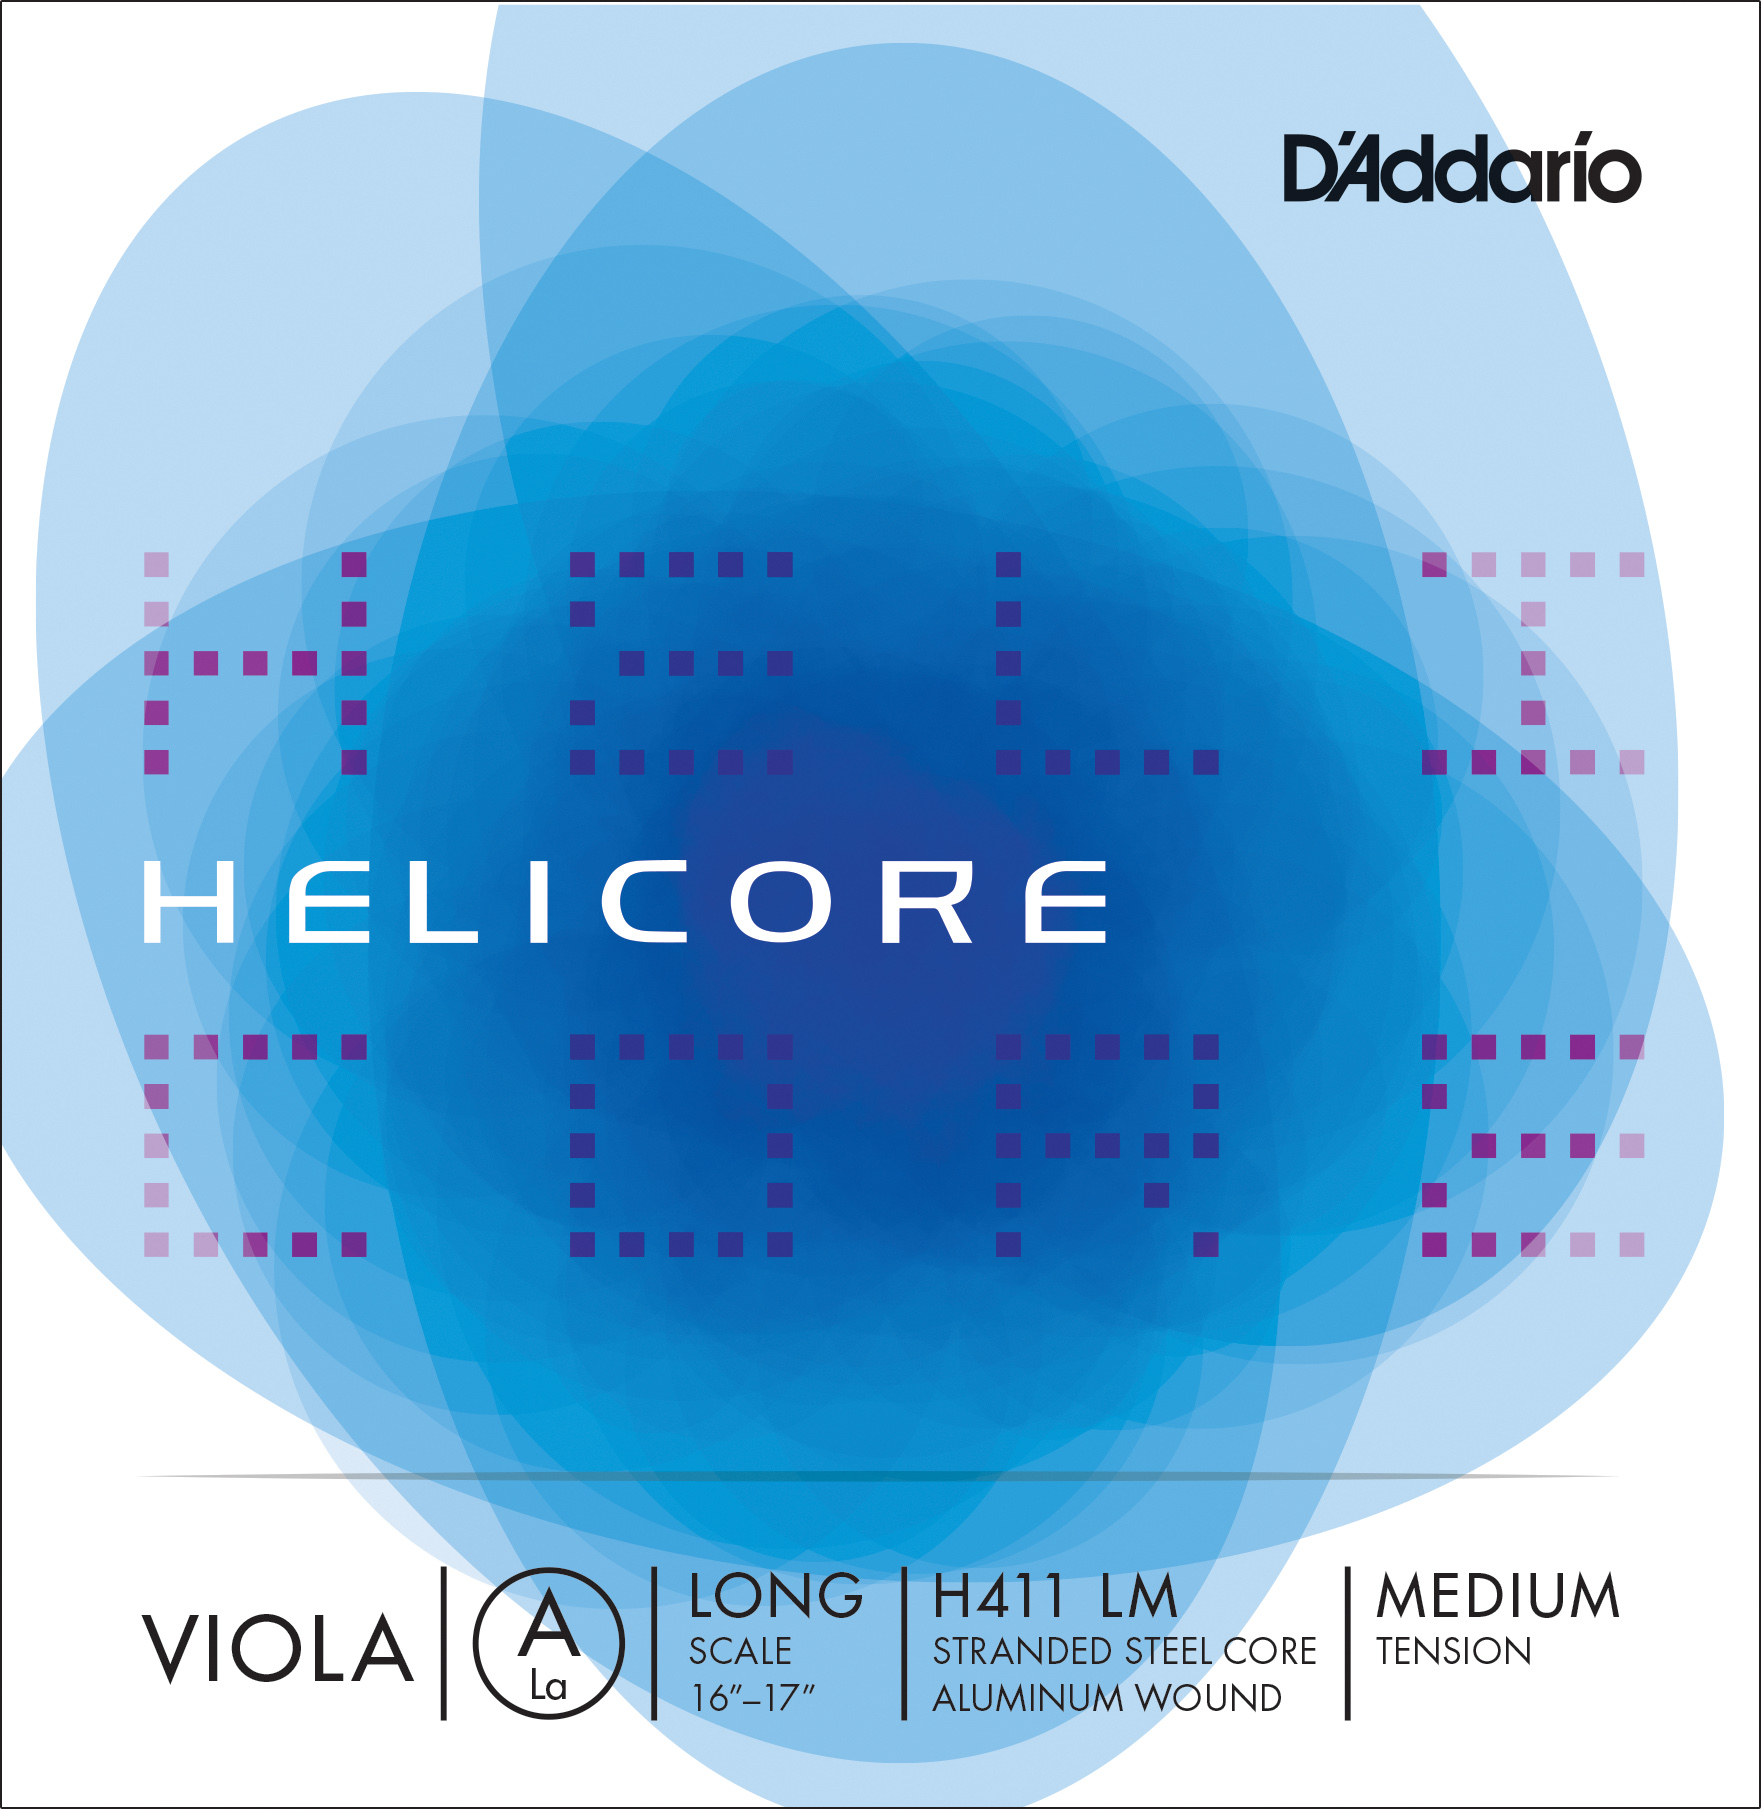 D'Addario Helicore Viola Single A String, Long Scale, Medium Tension